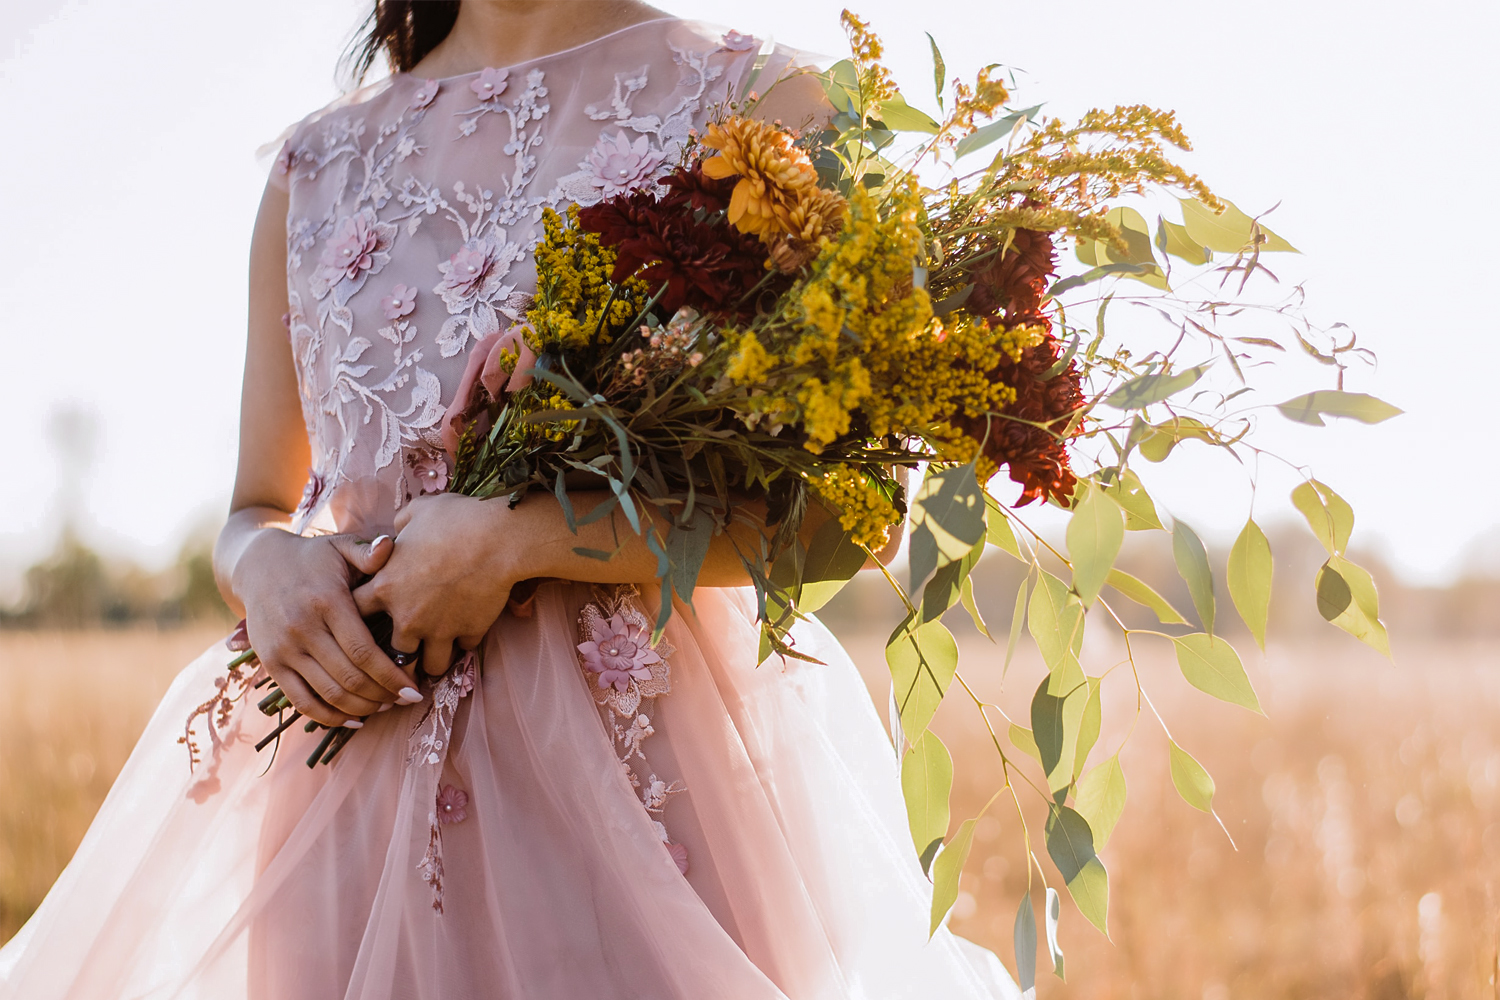 bride in the field holding wedding bouquet